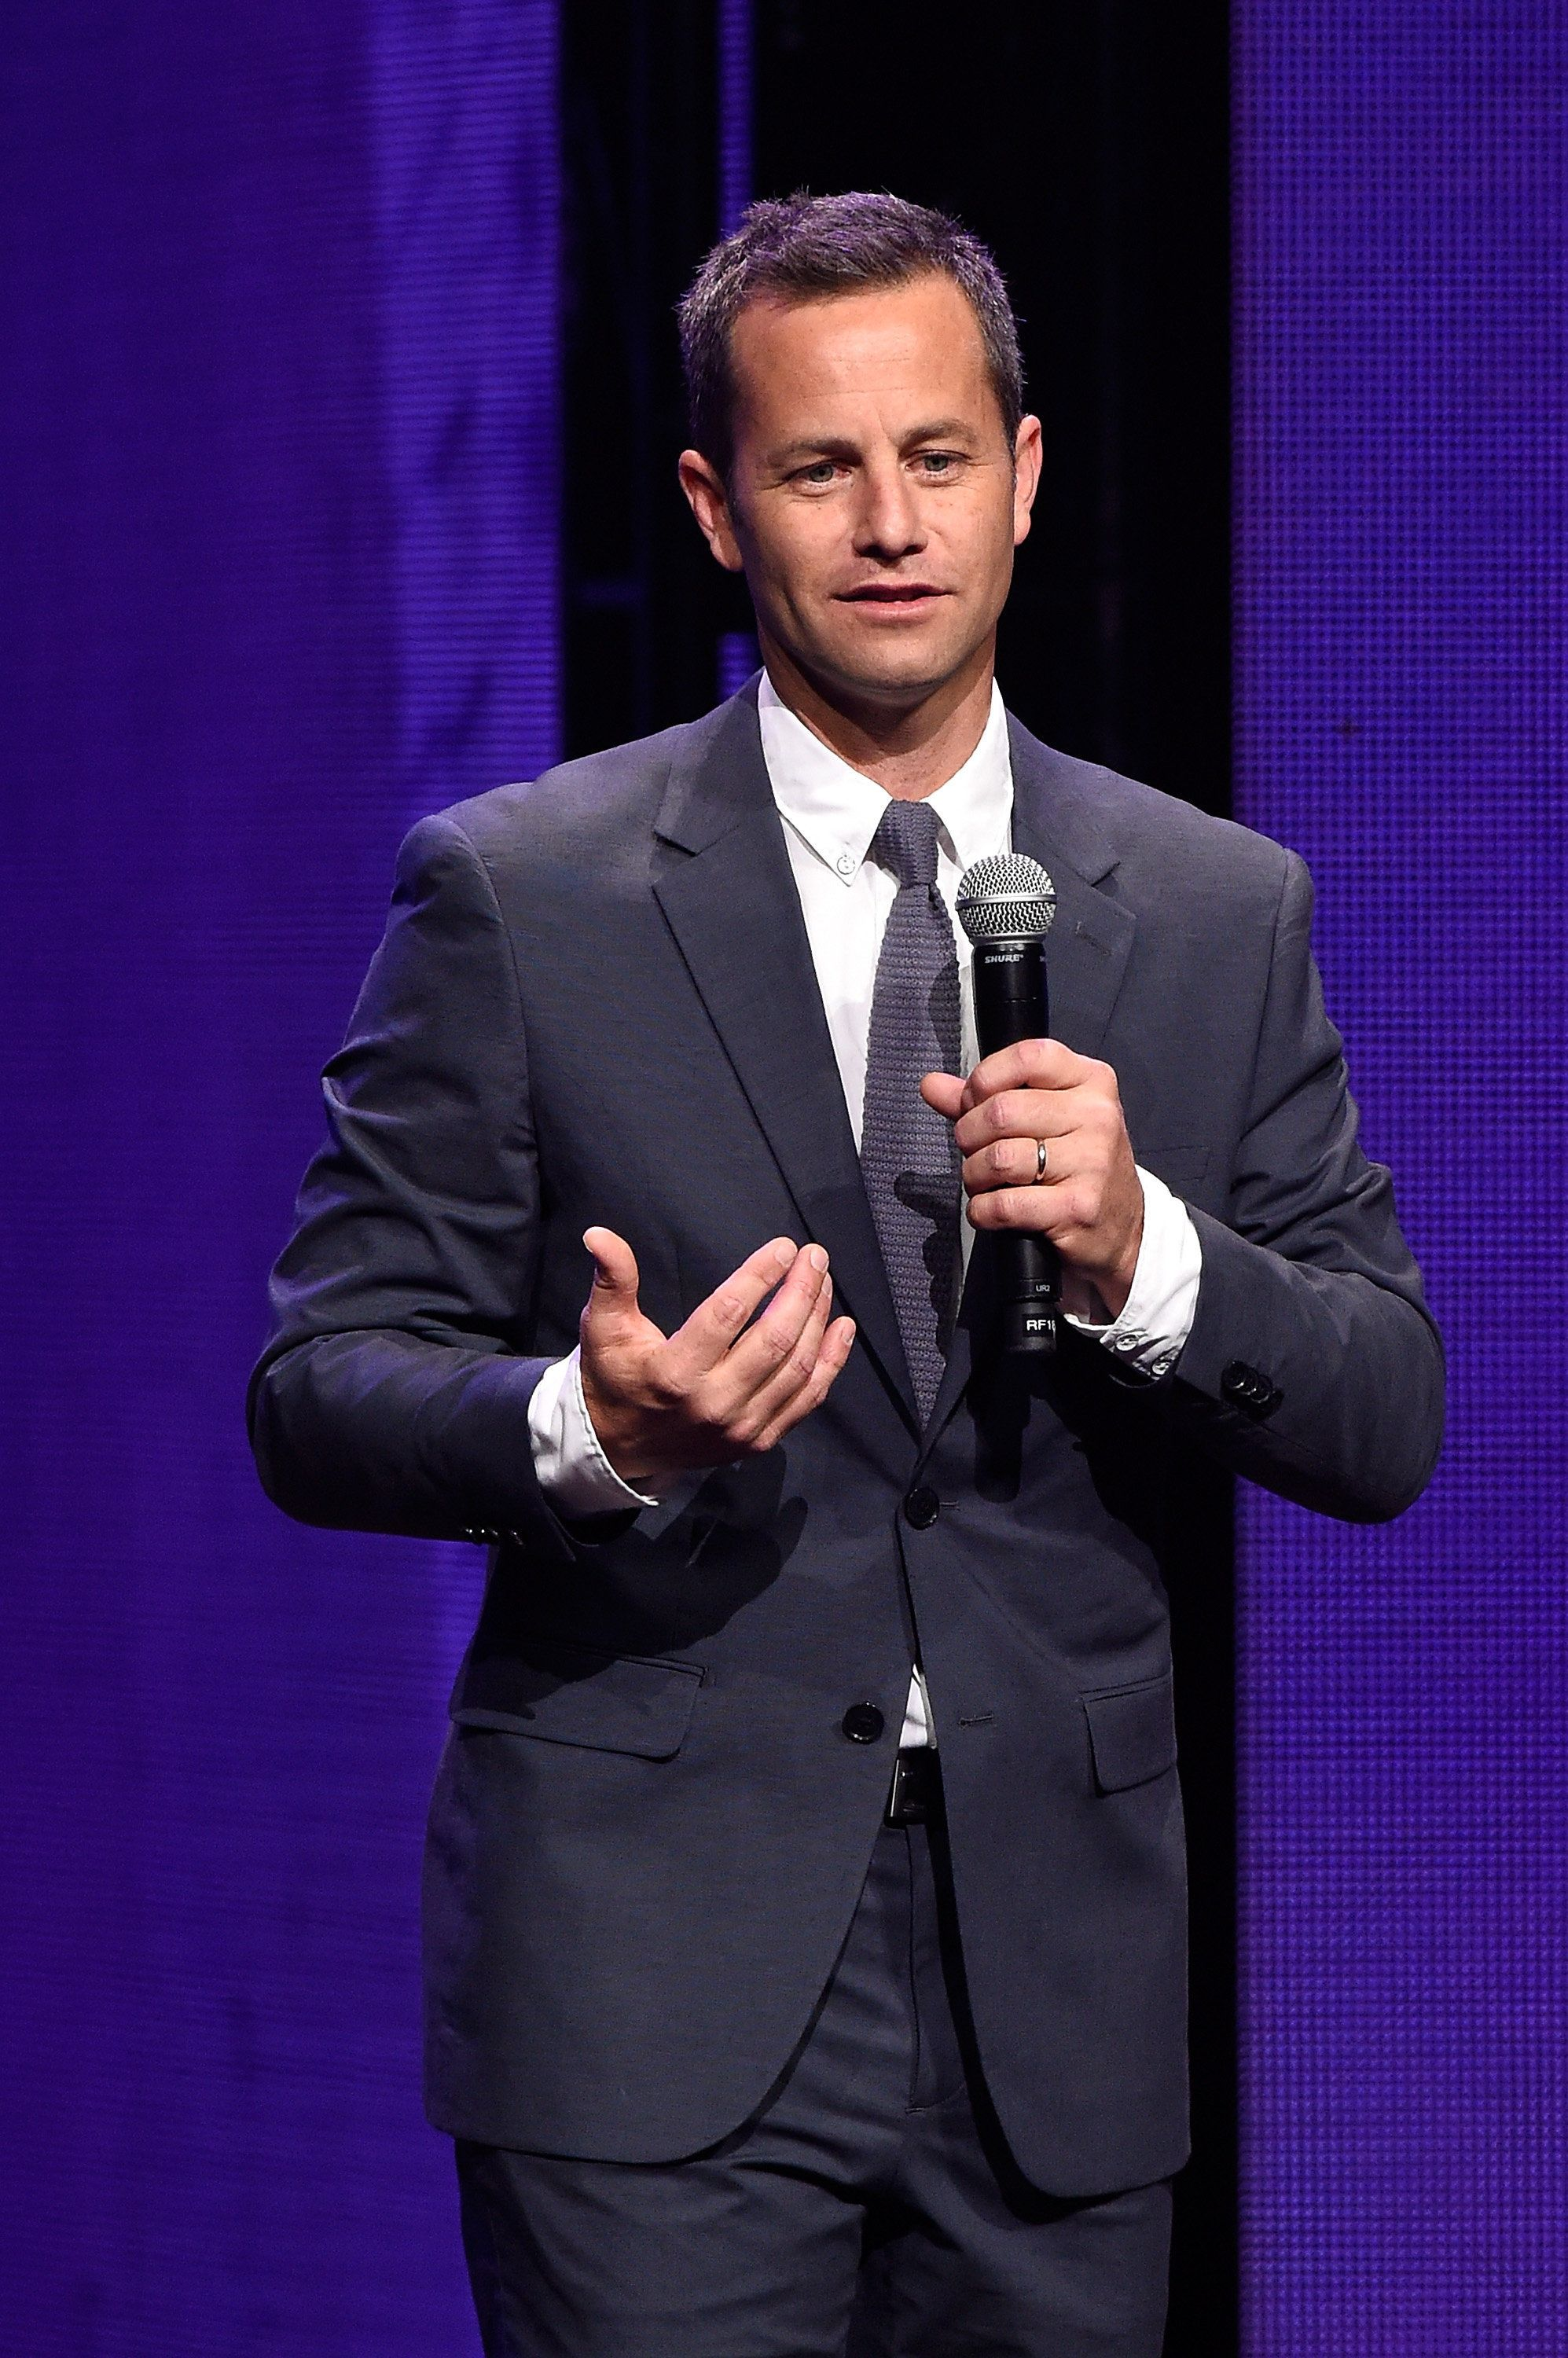 NASHVILLE, TN - MAY 31:  Co-host Kirk Cameron speaks onstage during the 3rd Annual KLOVE Fan Awards at the Grand Ole Opry House on May 31, 2015 in Nashville, Tennessee.  (Photo by Rick Diamond/Getty Images for KLOVE)